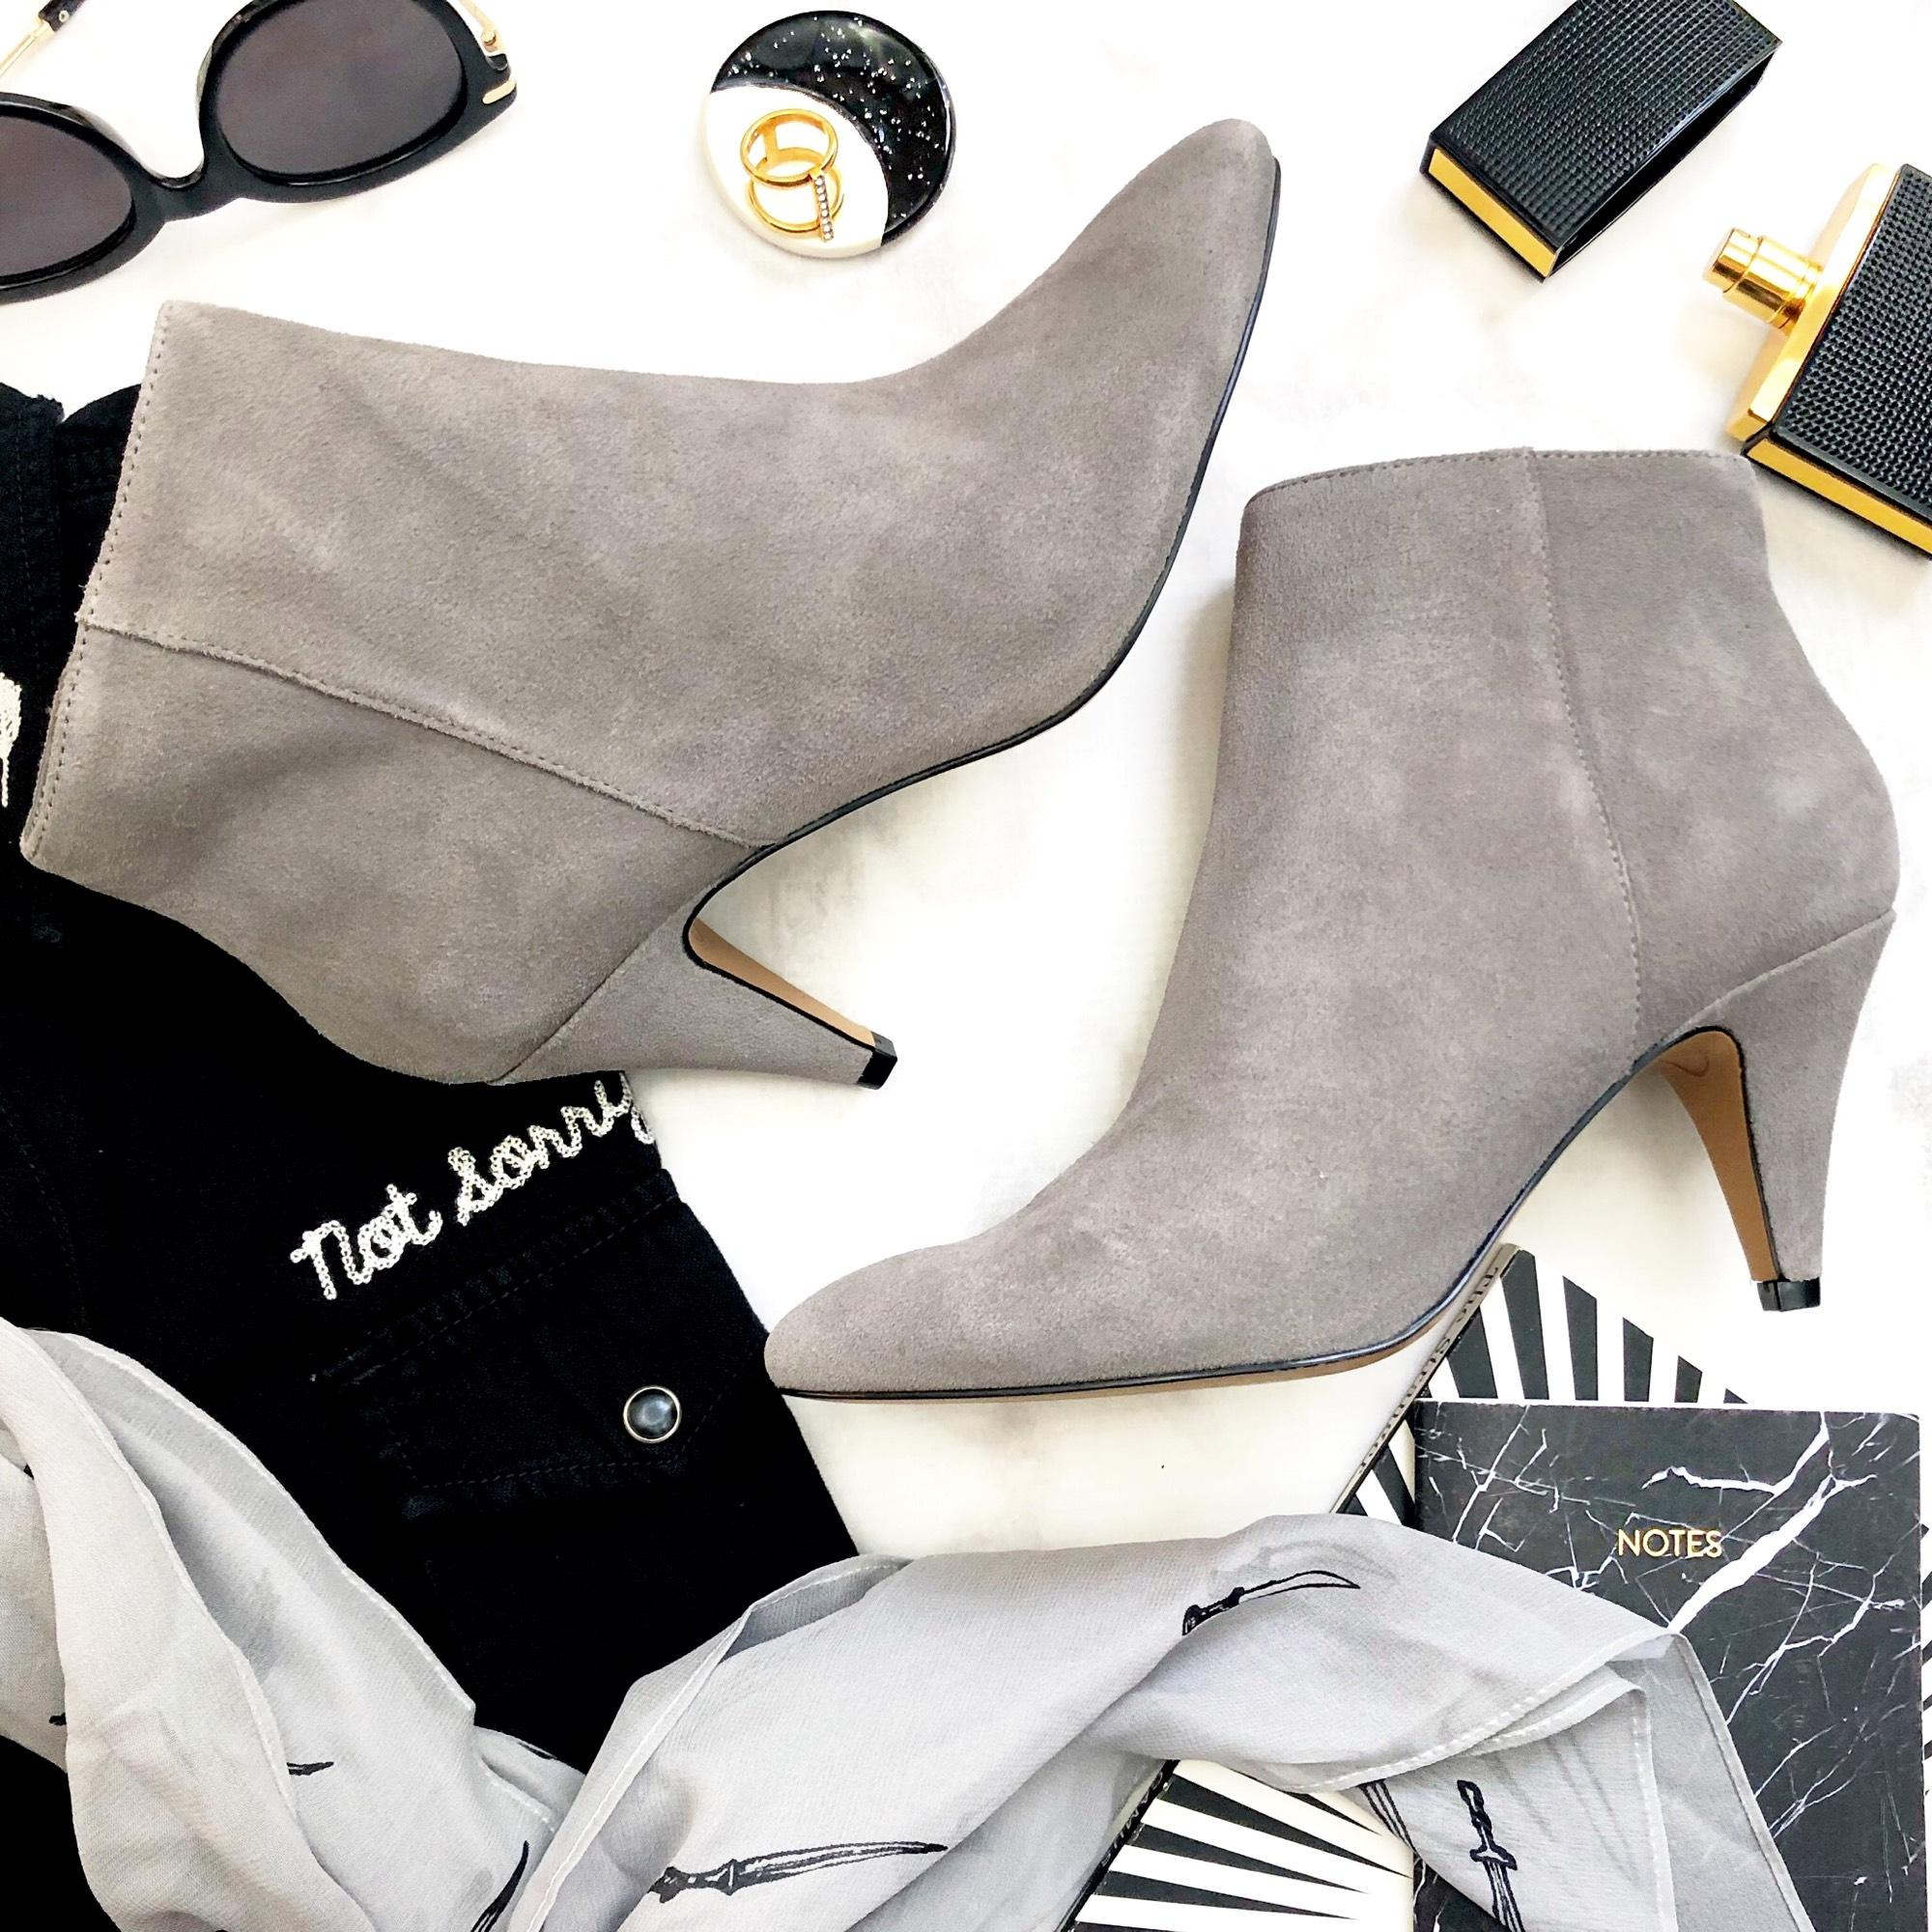 a13a31abb7b99 Dolce Vita Gray Suede Pointed Toe Ankle Boots Booties Size Size Size ...